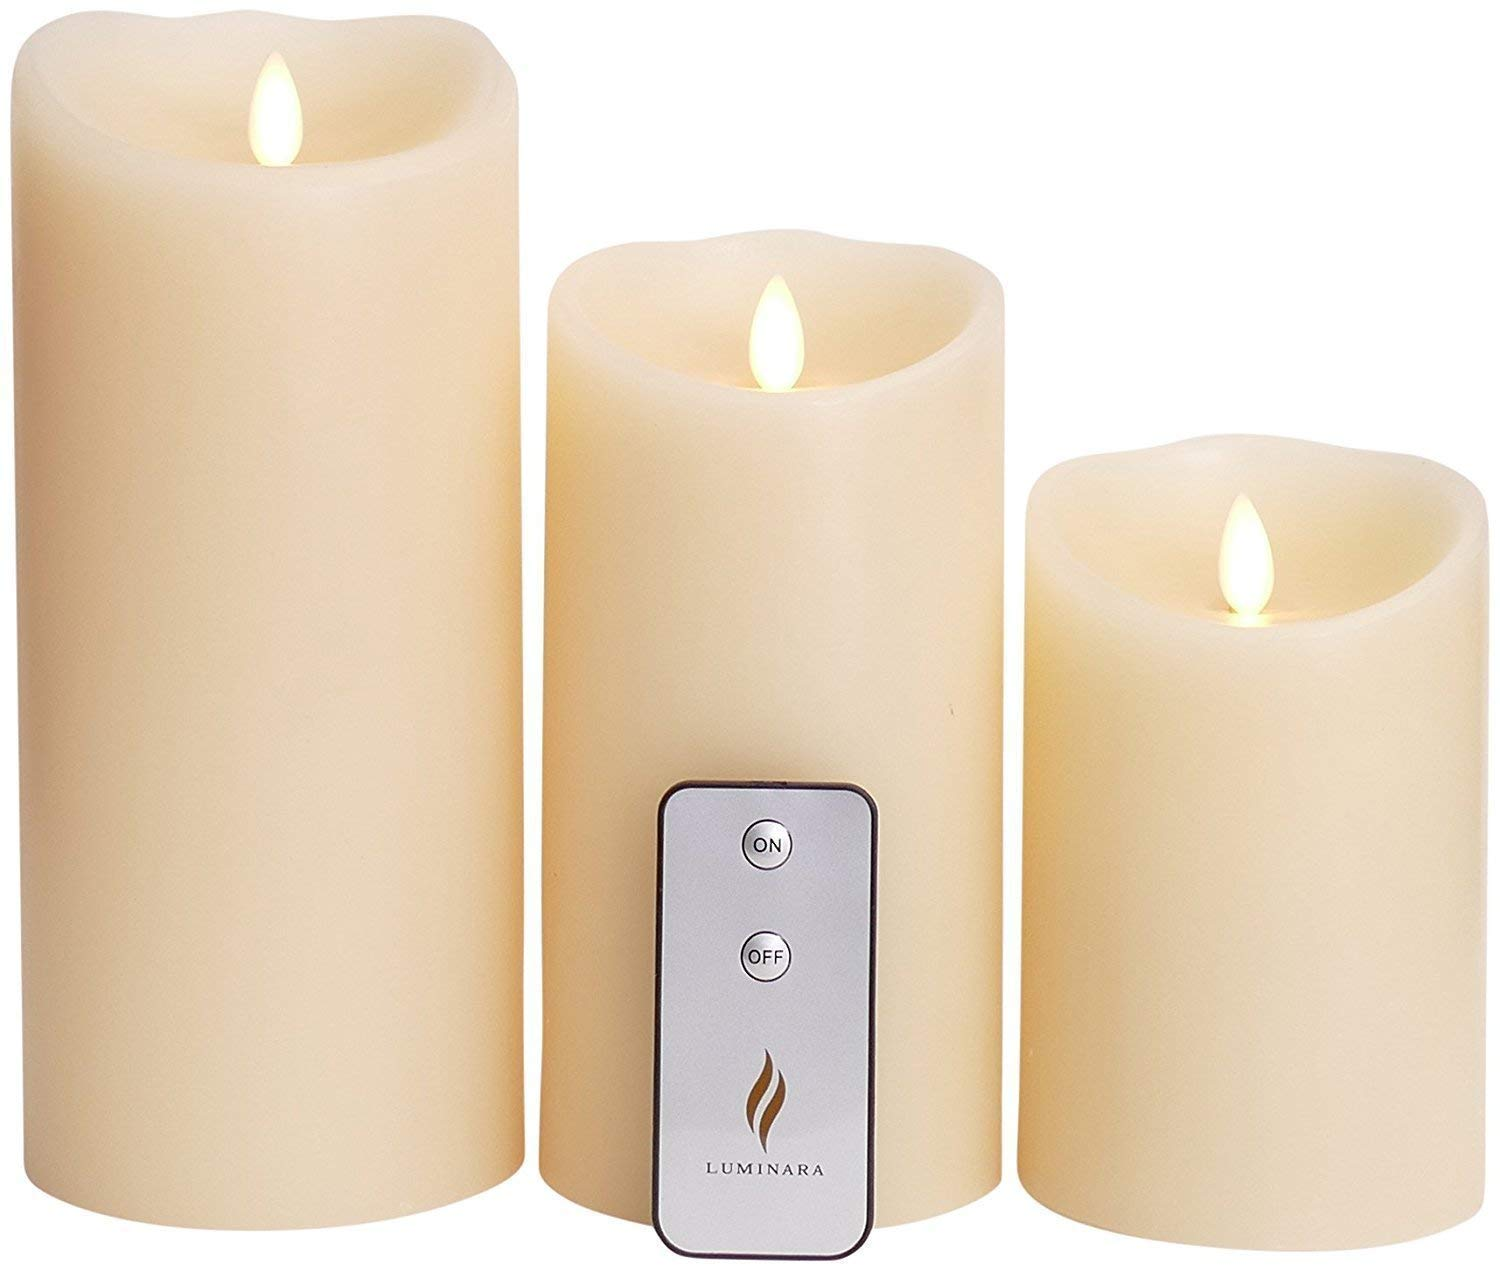 LED Flameless Candle Set of 3pcs,3.5-Inch by 5/7/9-Inch Pillar Candle with Moving Wick,Ivory by ZG&HY